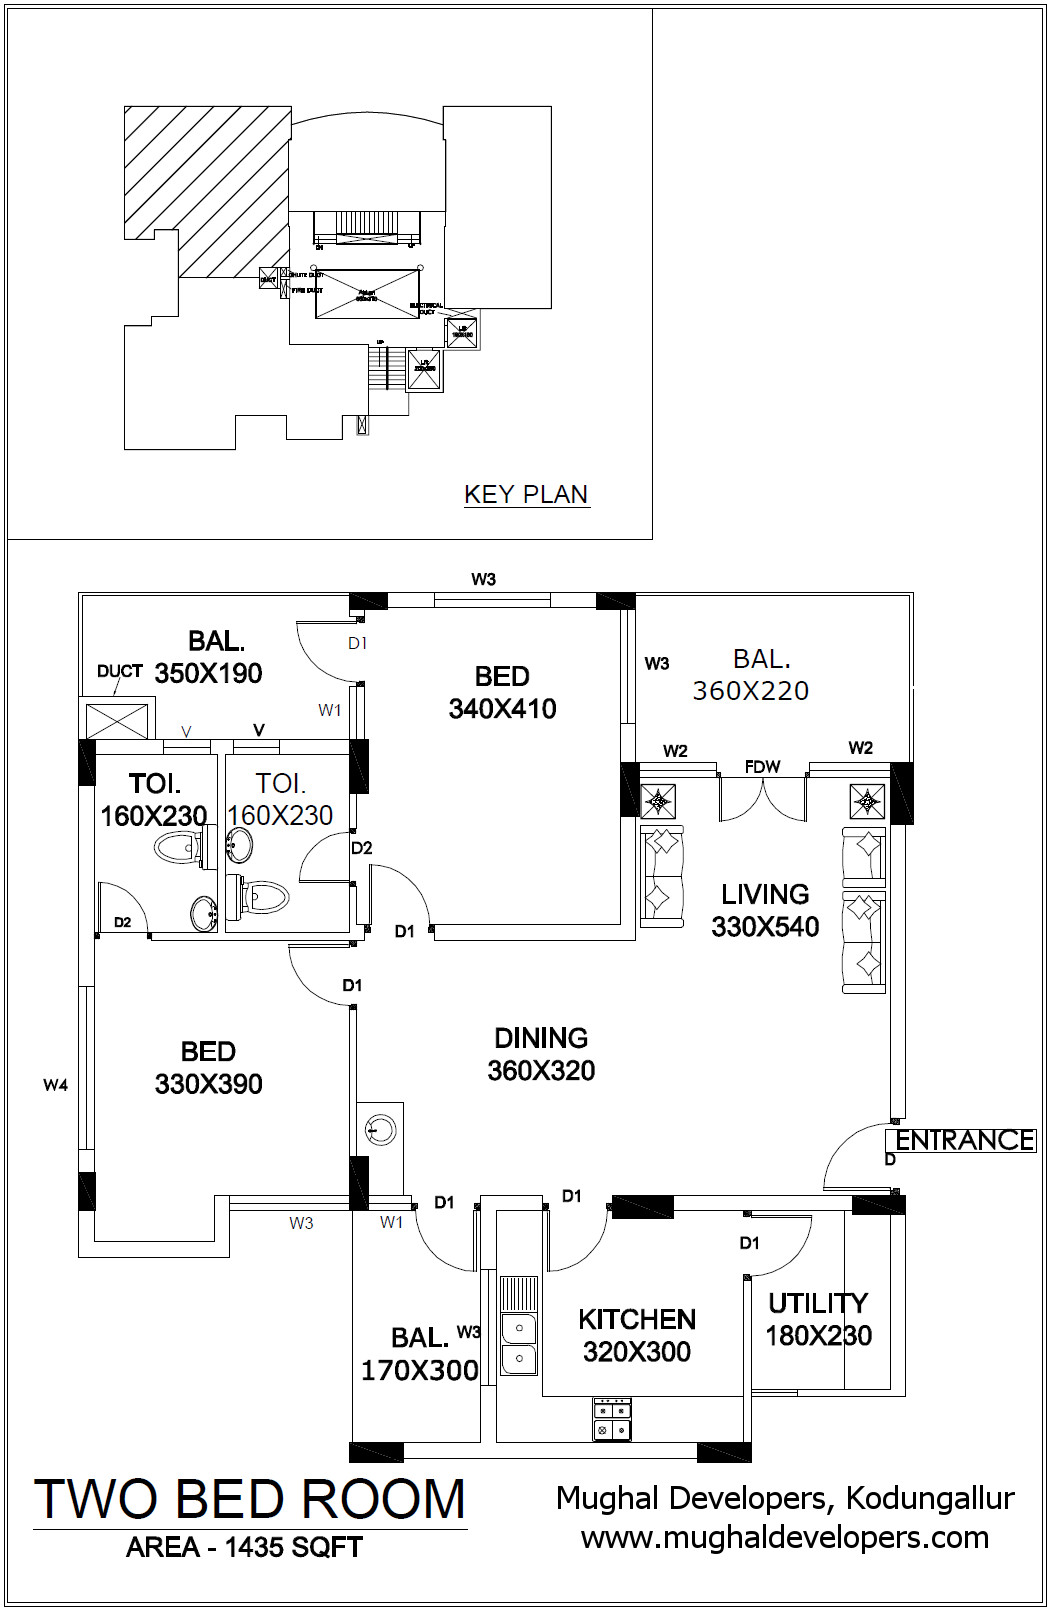 2 bedroom hall kitchen 2bhk mughal apartments 2 bhk flat drawing